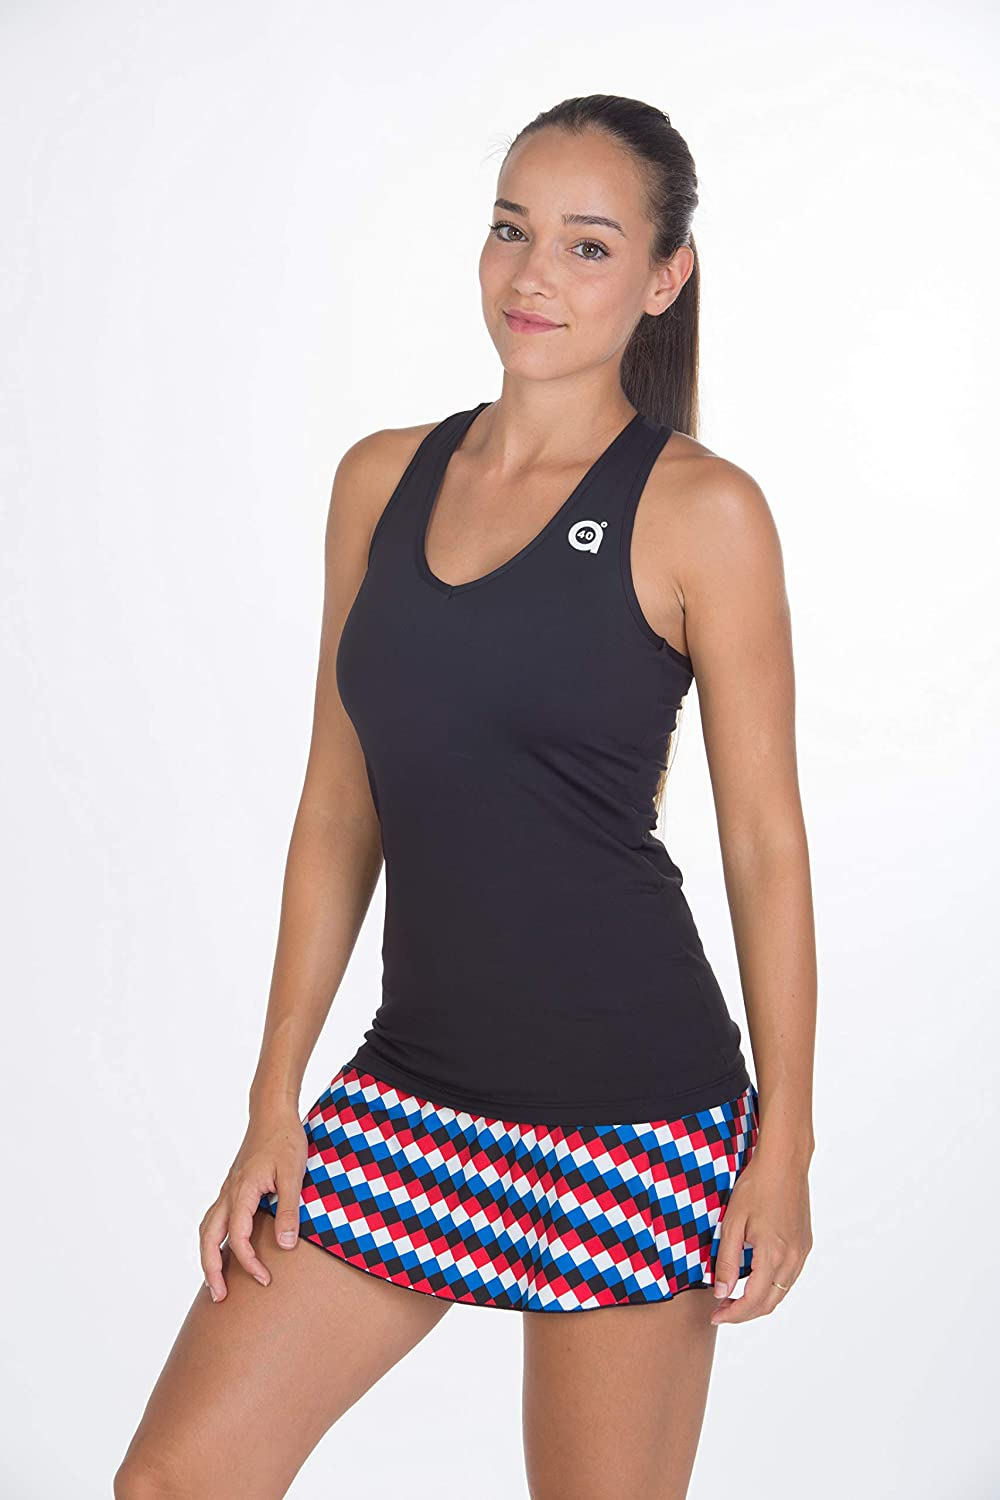 a40grados Sport /& Style Tennis and Paddle Woman Skirt Geometric